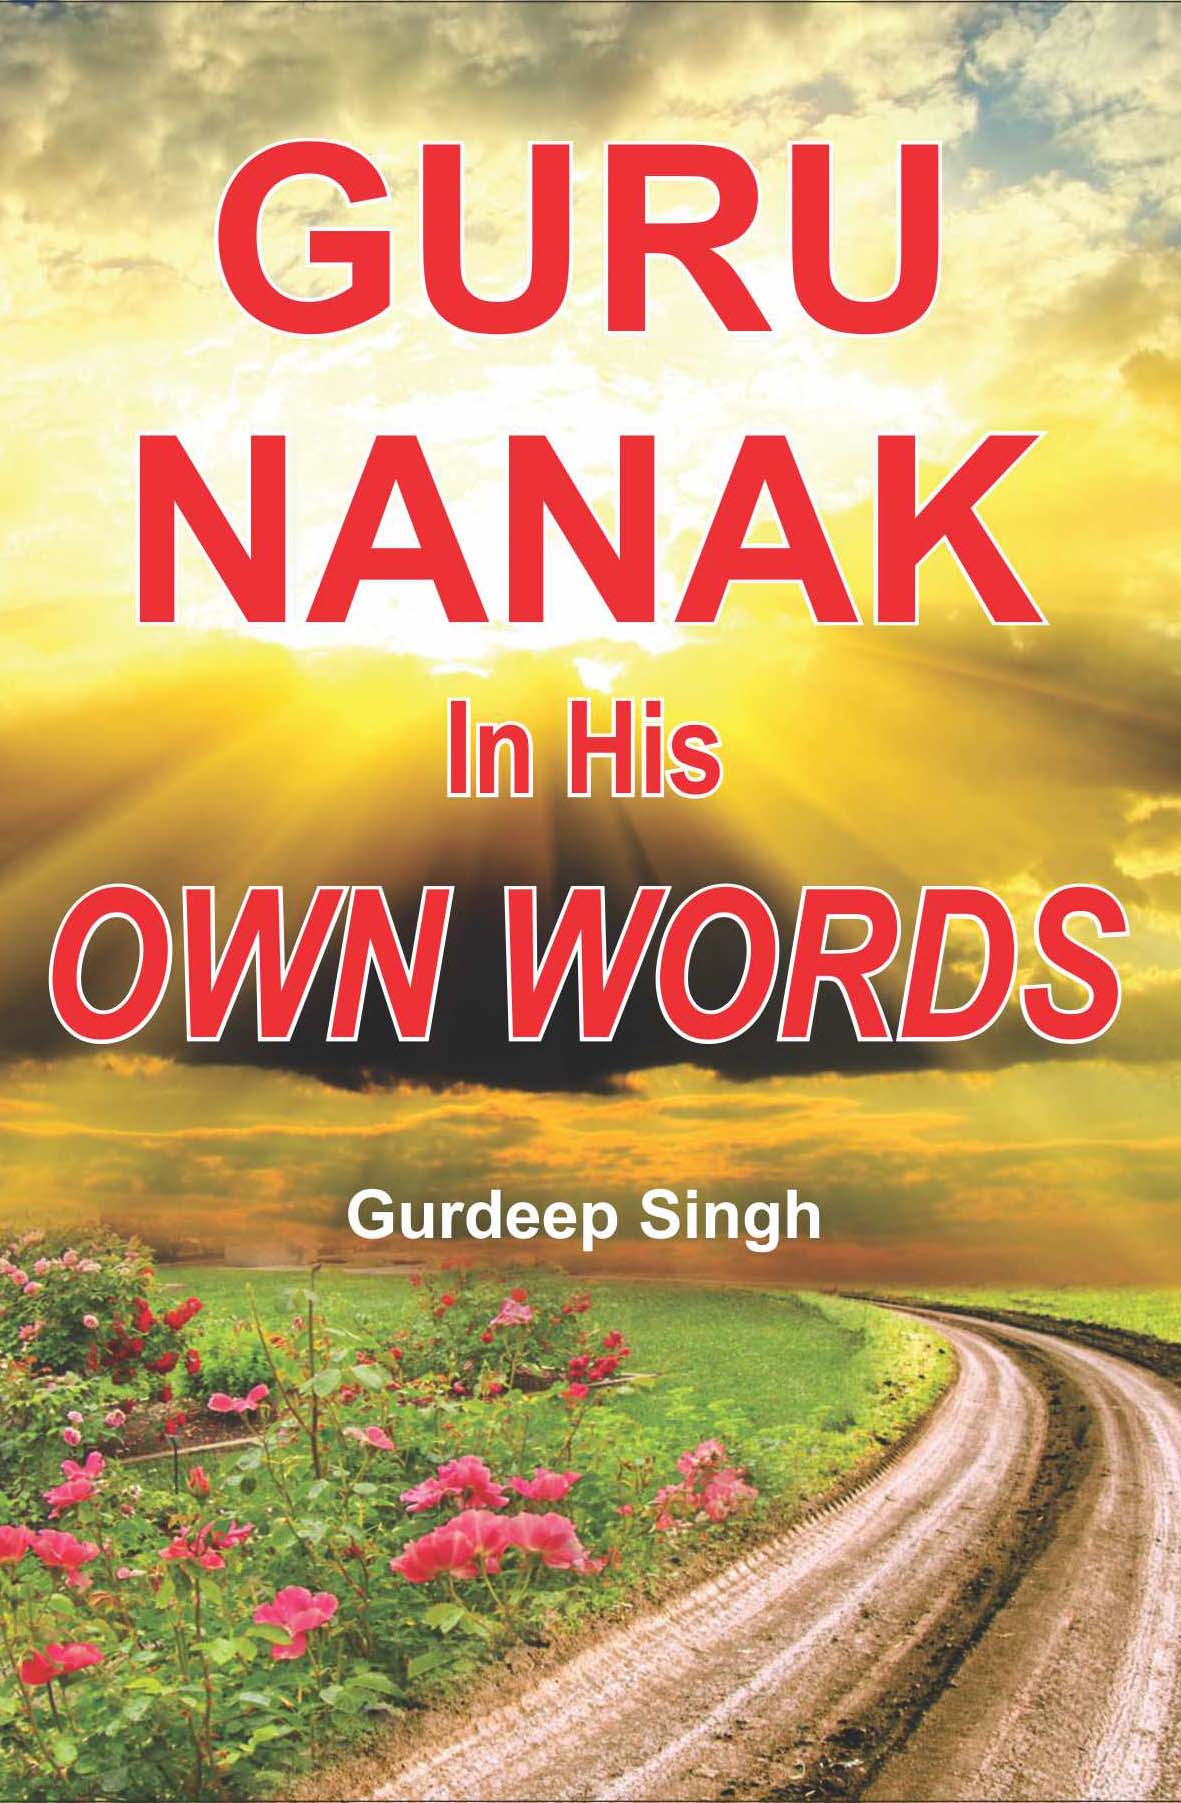 guru-nanak-in-his-own-words-1.jpg